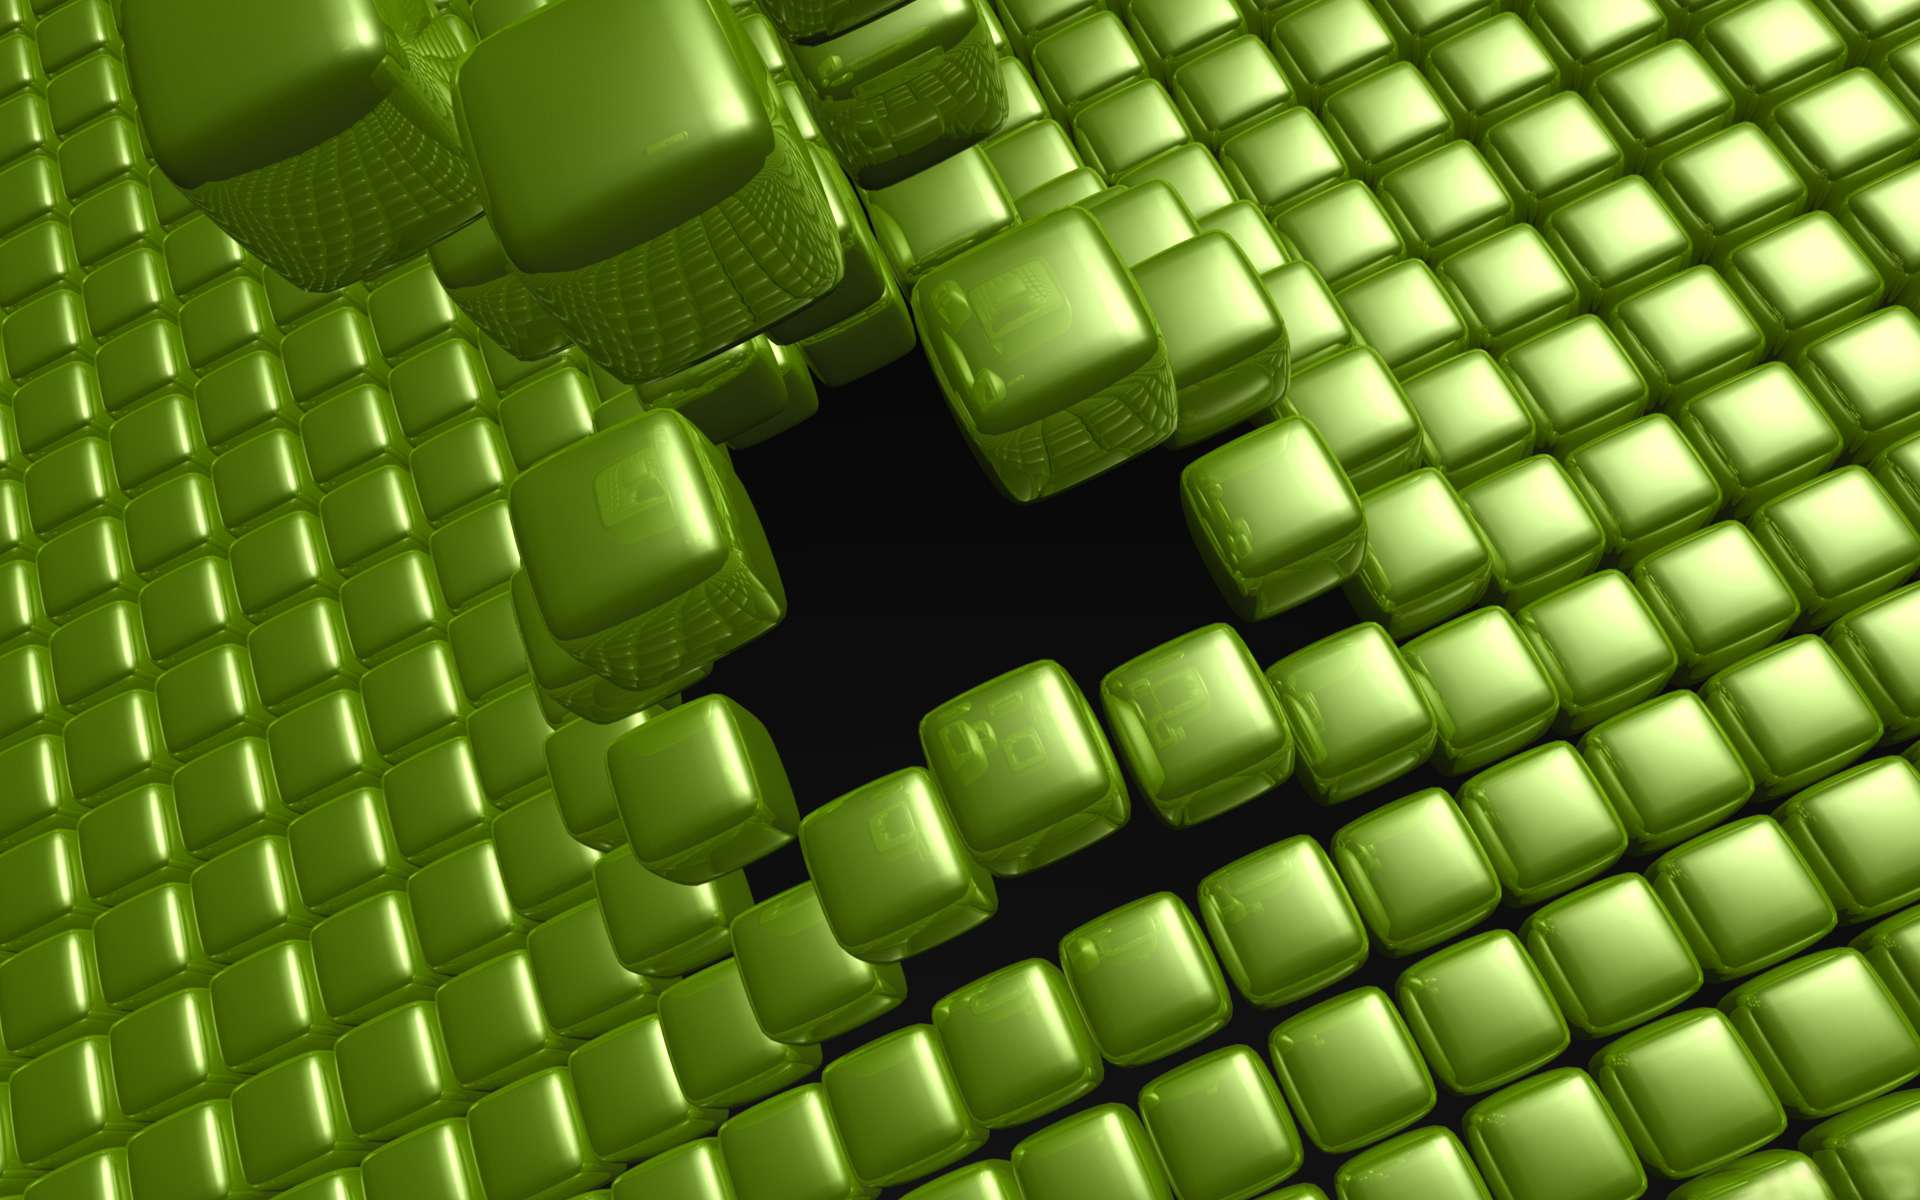 Hd Background Wallpaper 800x600: 3D Abstract Cube HD Awesome Wallpapers (High Resolution